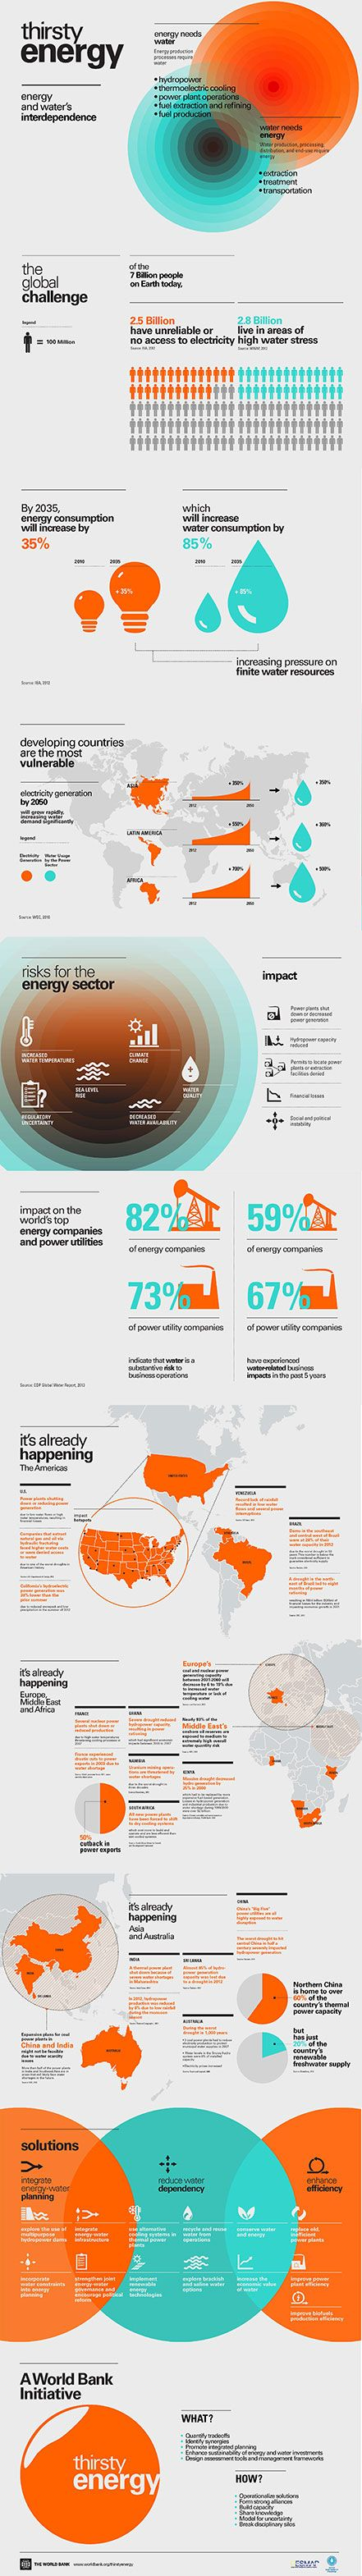 Infographic from the World Bank looking at  energy and water's interdependence. #thirstyenergy